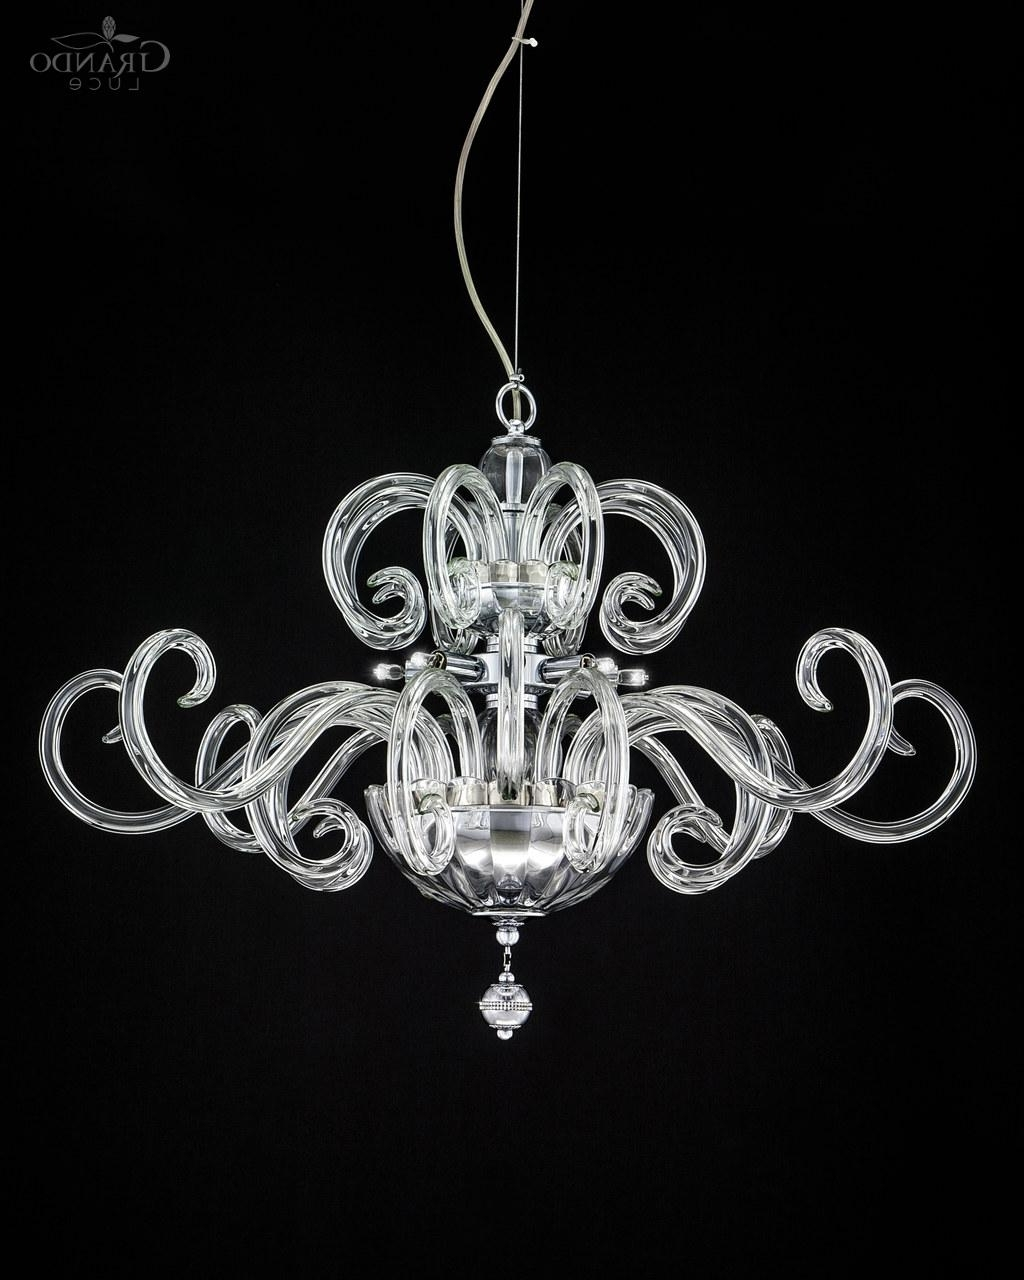 Crystal Chrome Chandeliers Pertaining To Most Up To Date 119/sm Chrome Modern Crystal Chandelier With Swarovski Elements (View 6 of 15)